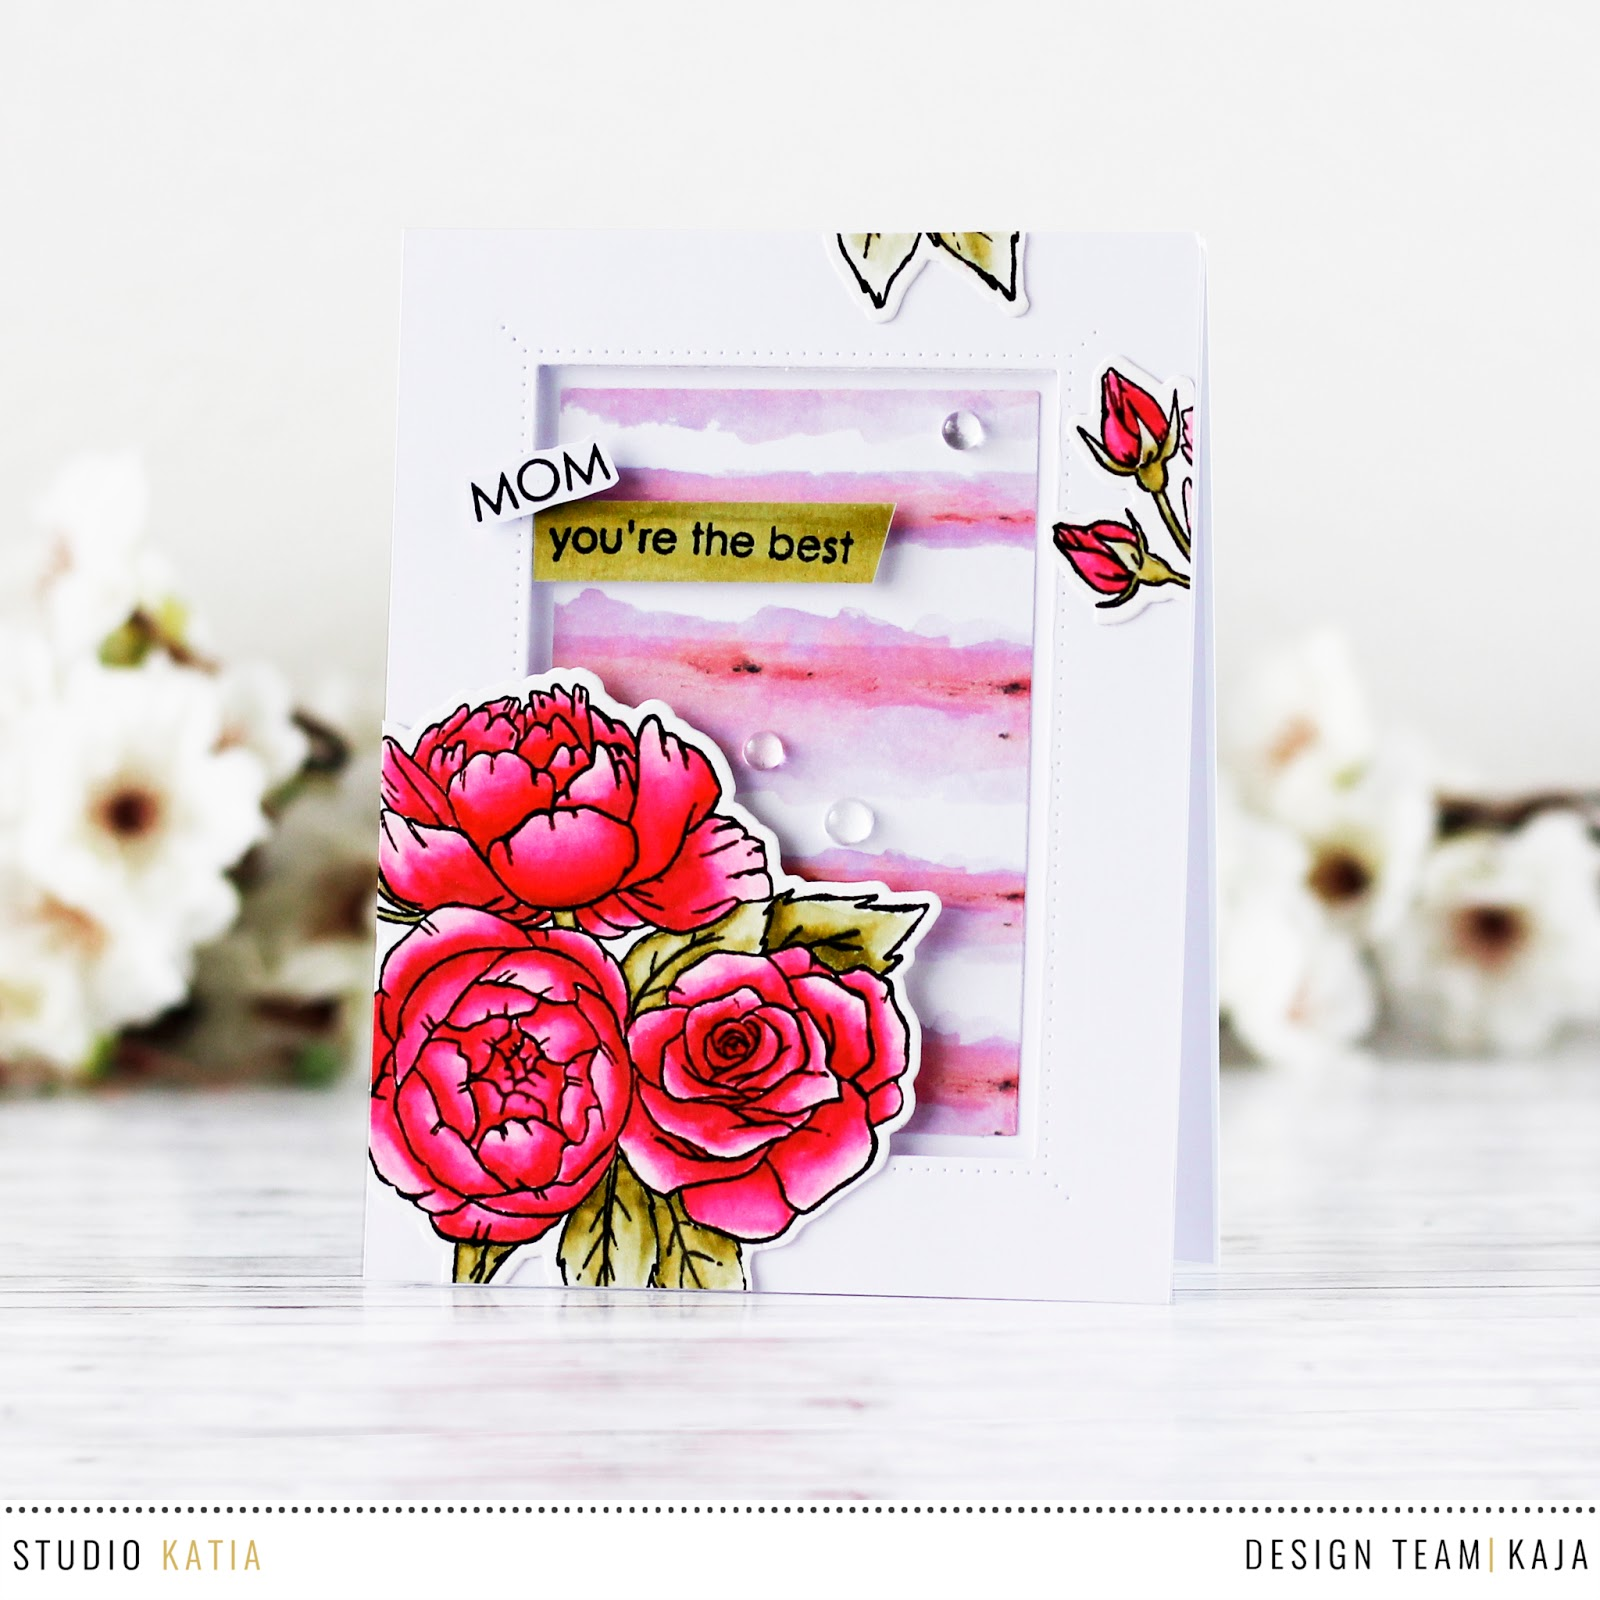 Mother's day | STUDIO KATIA